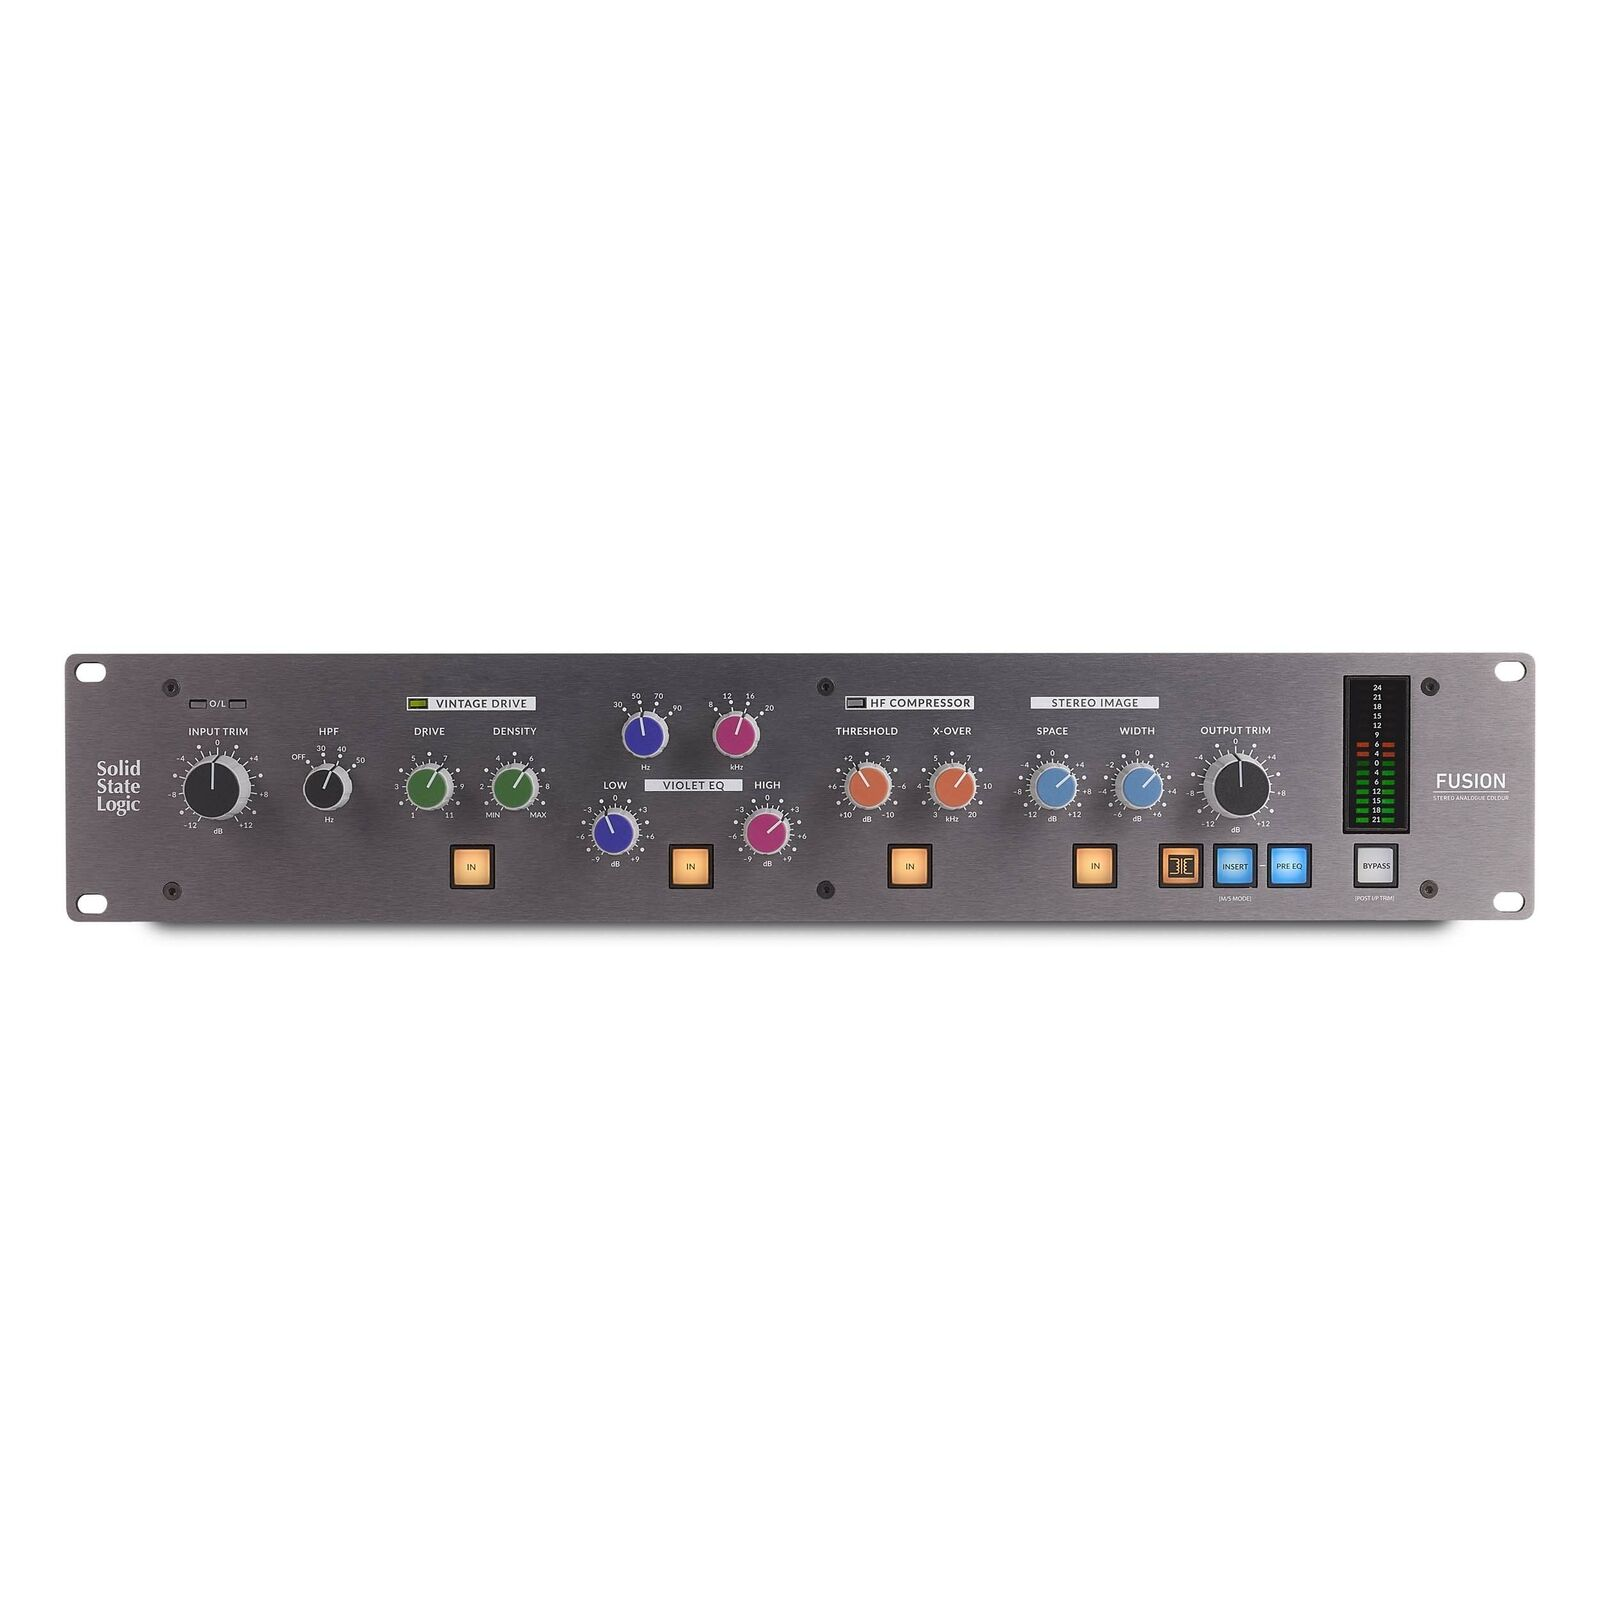 Solid State Logic Fusion Stereo Analogue Colour. Available Now for 2298.00